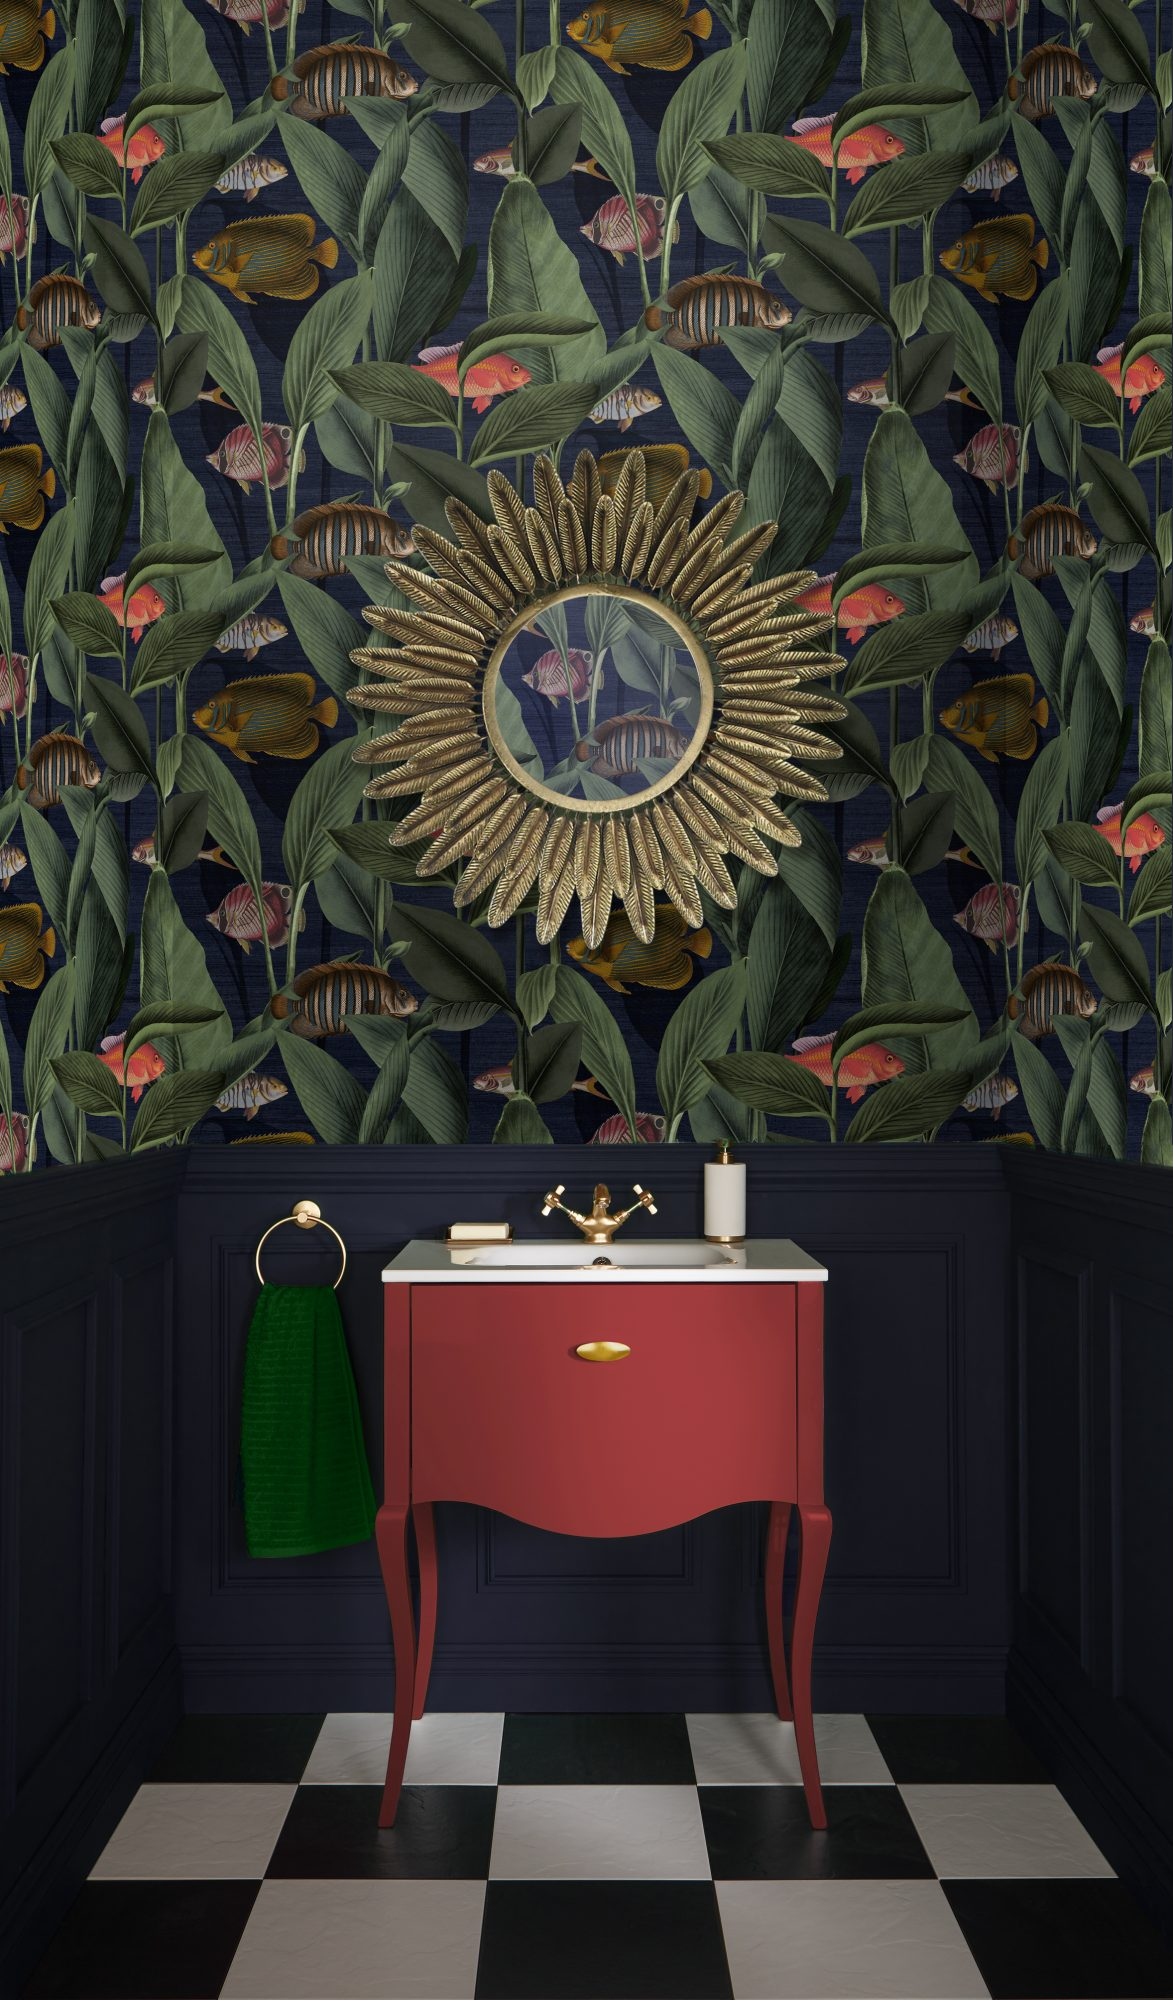 Fish and tropical plant wallpaper behind a red sink and a starburst mirror